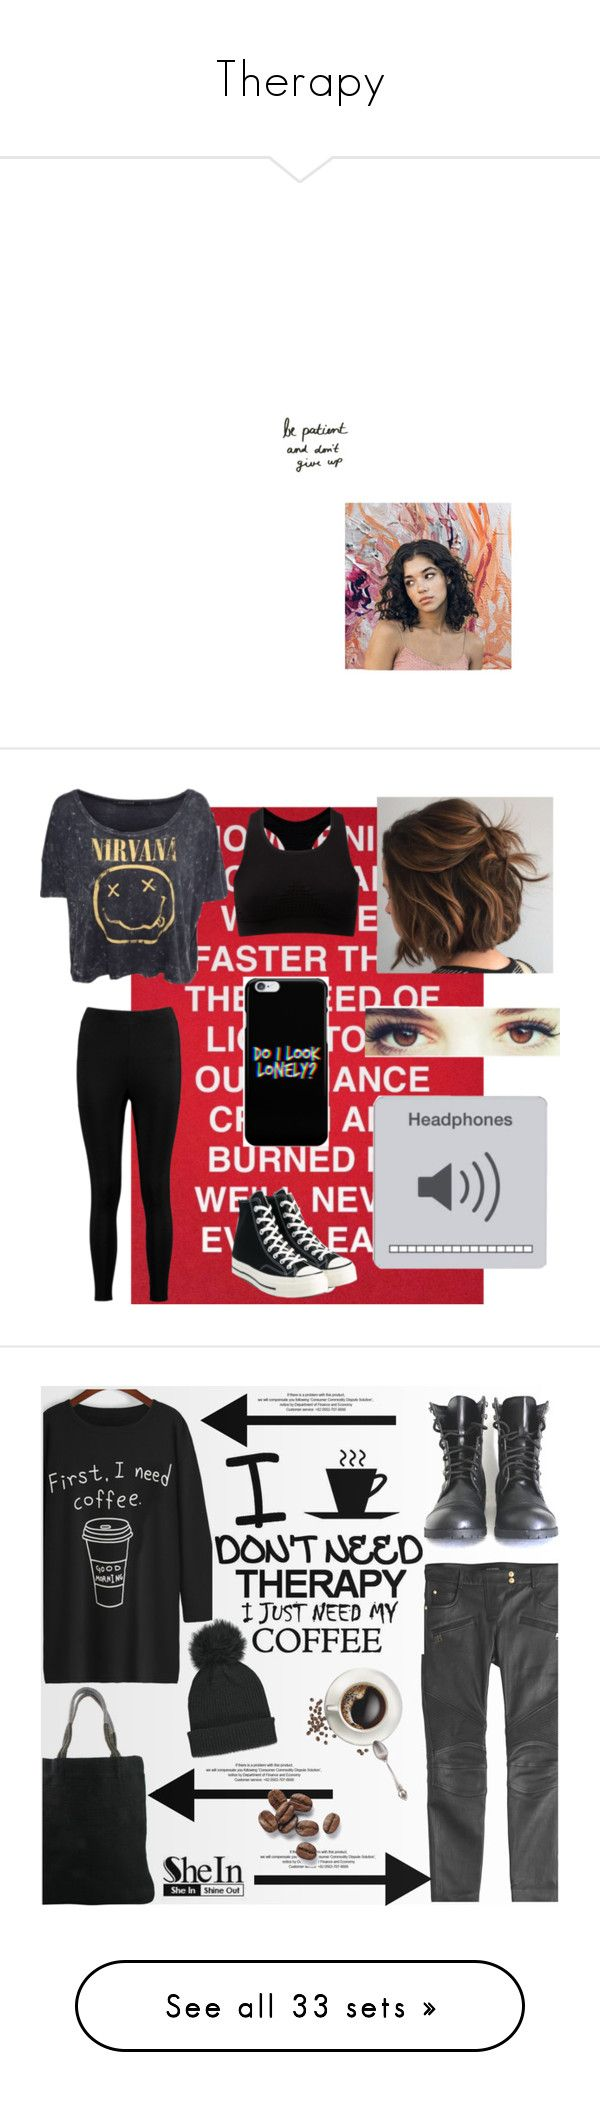 """Therapy"" by winkiefingers ❤ liked on Polyvore featuring art, wandererzine, Sweaty Betty, Boohoo, Converse, Balmain, StyleNanda, canvas, Therapy and Forever 21"